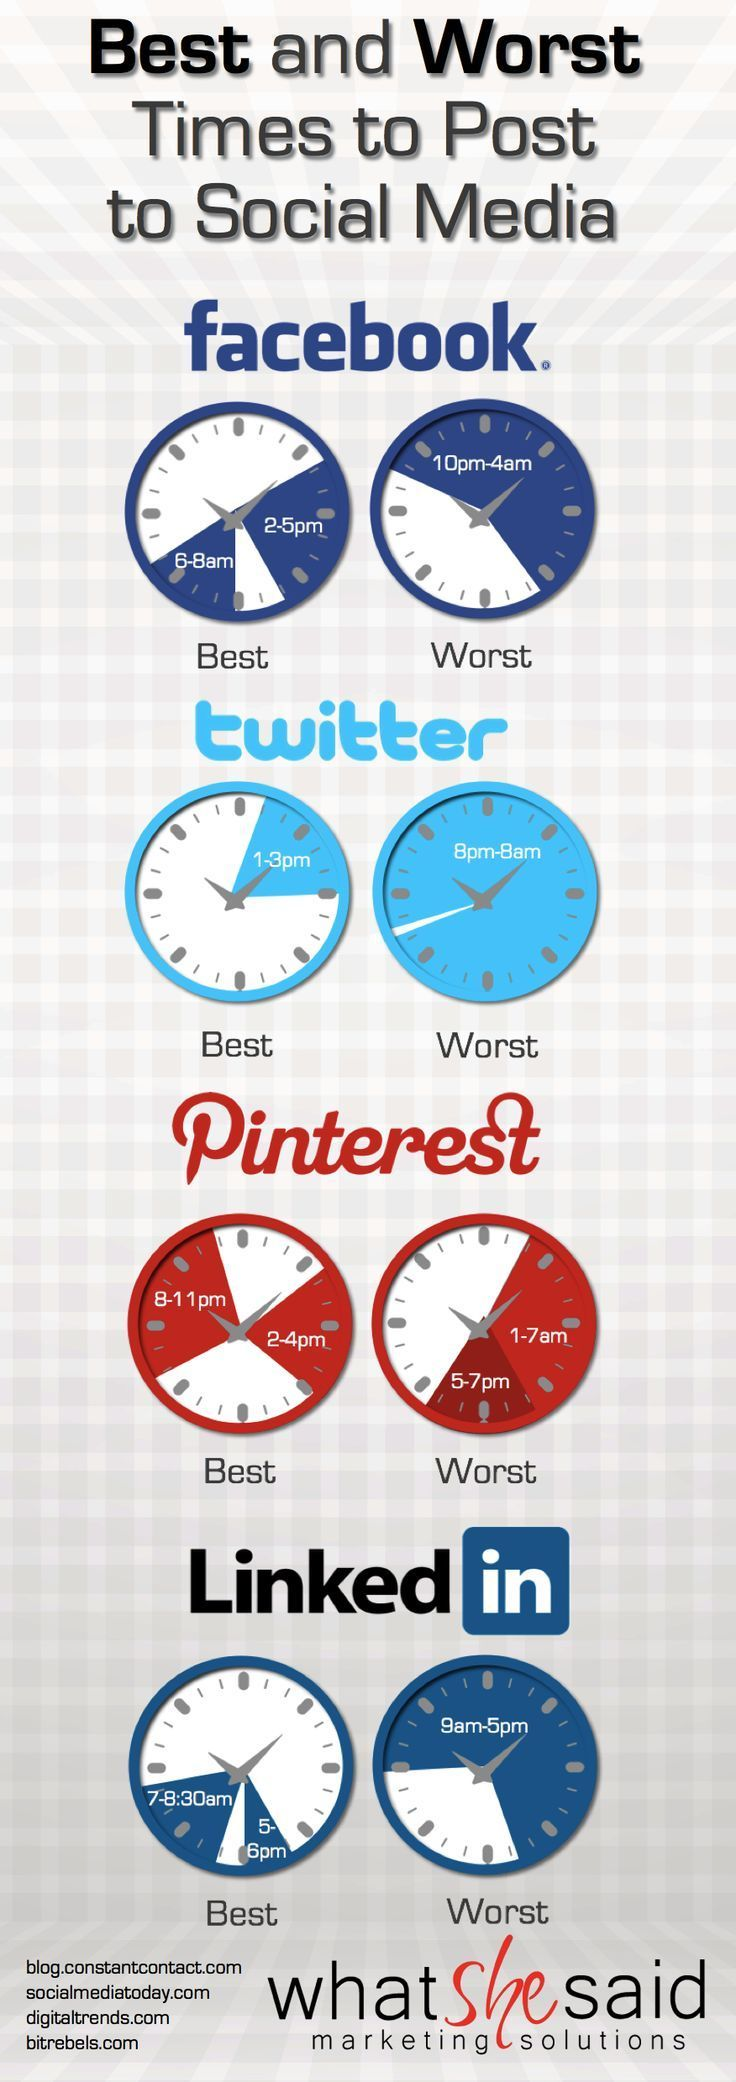 Best and Worst Times to... Social Media Marketing, Social Media Marketing. Time to post